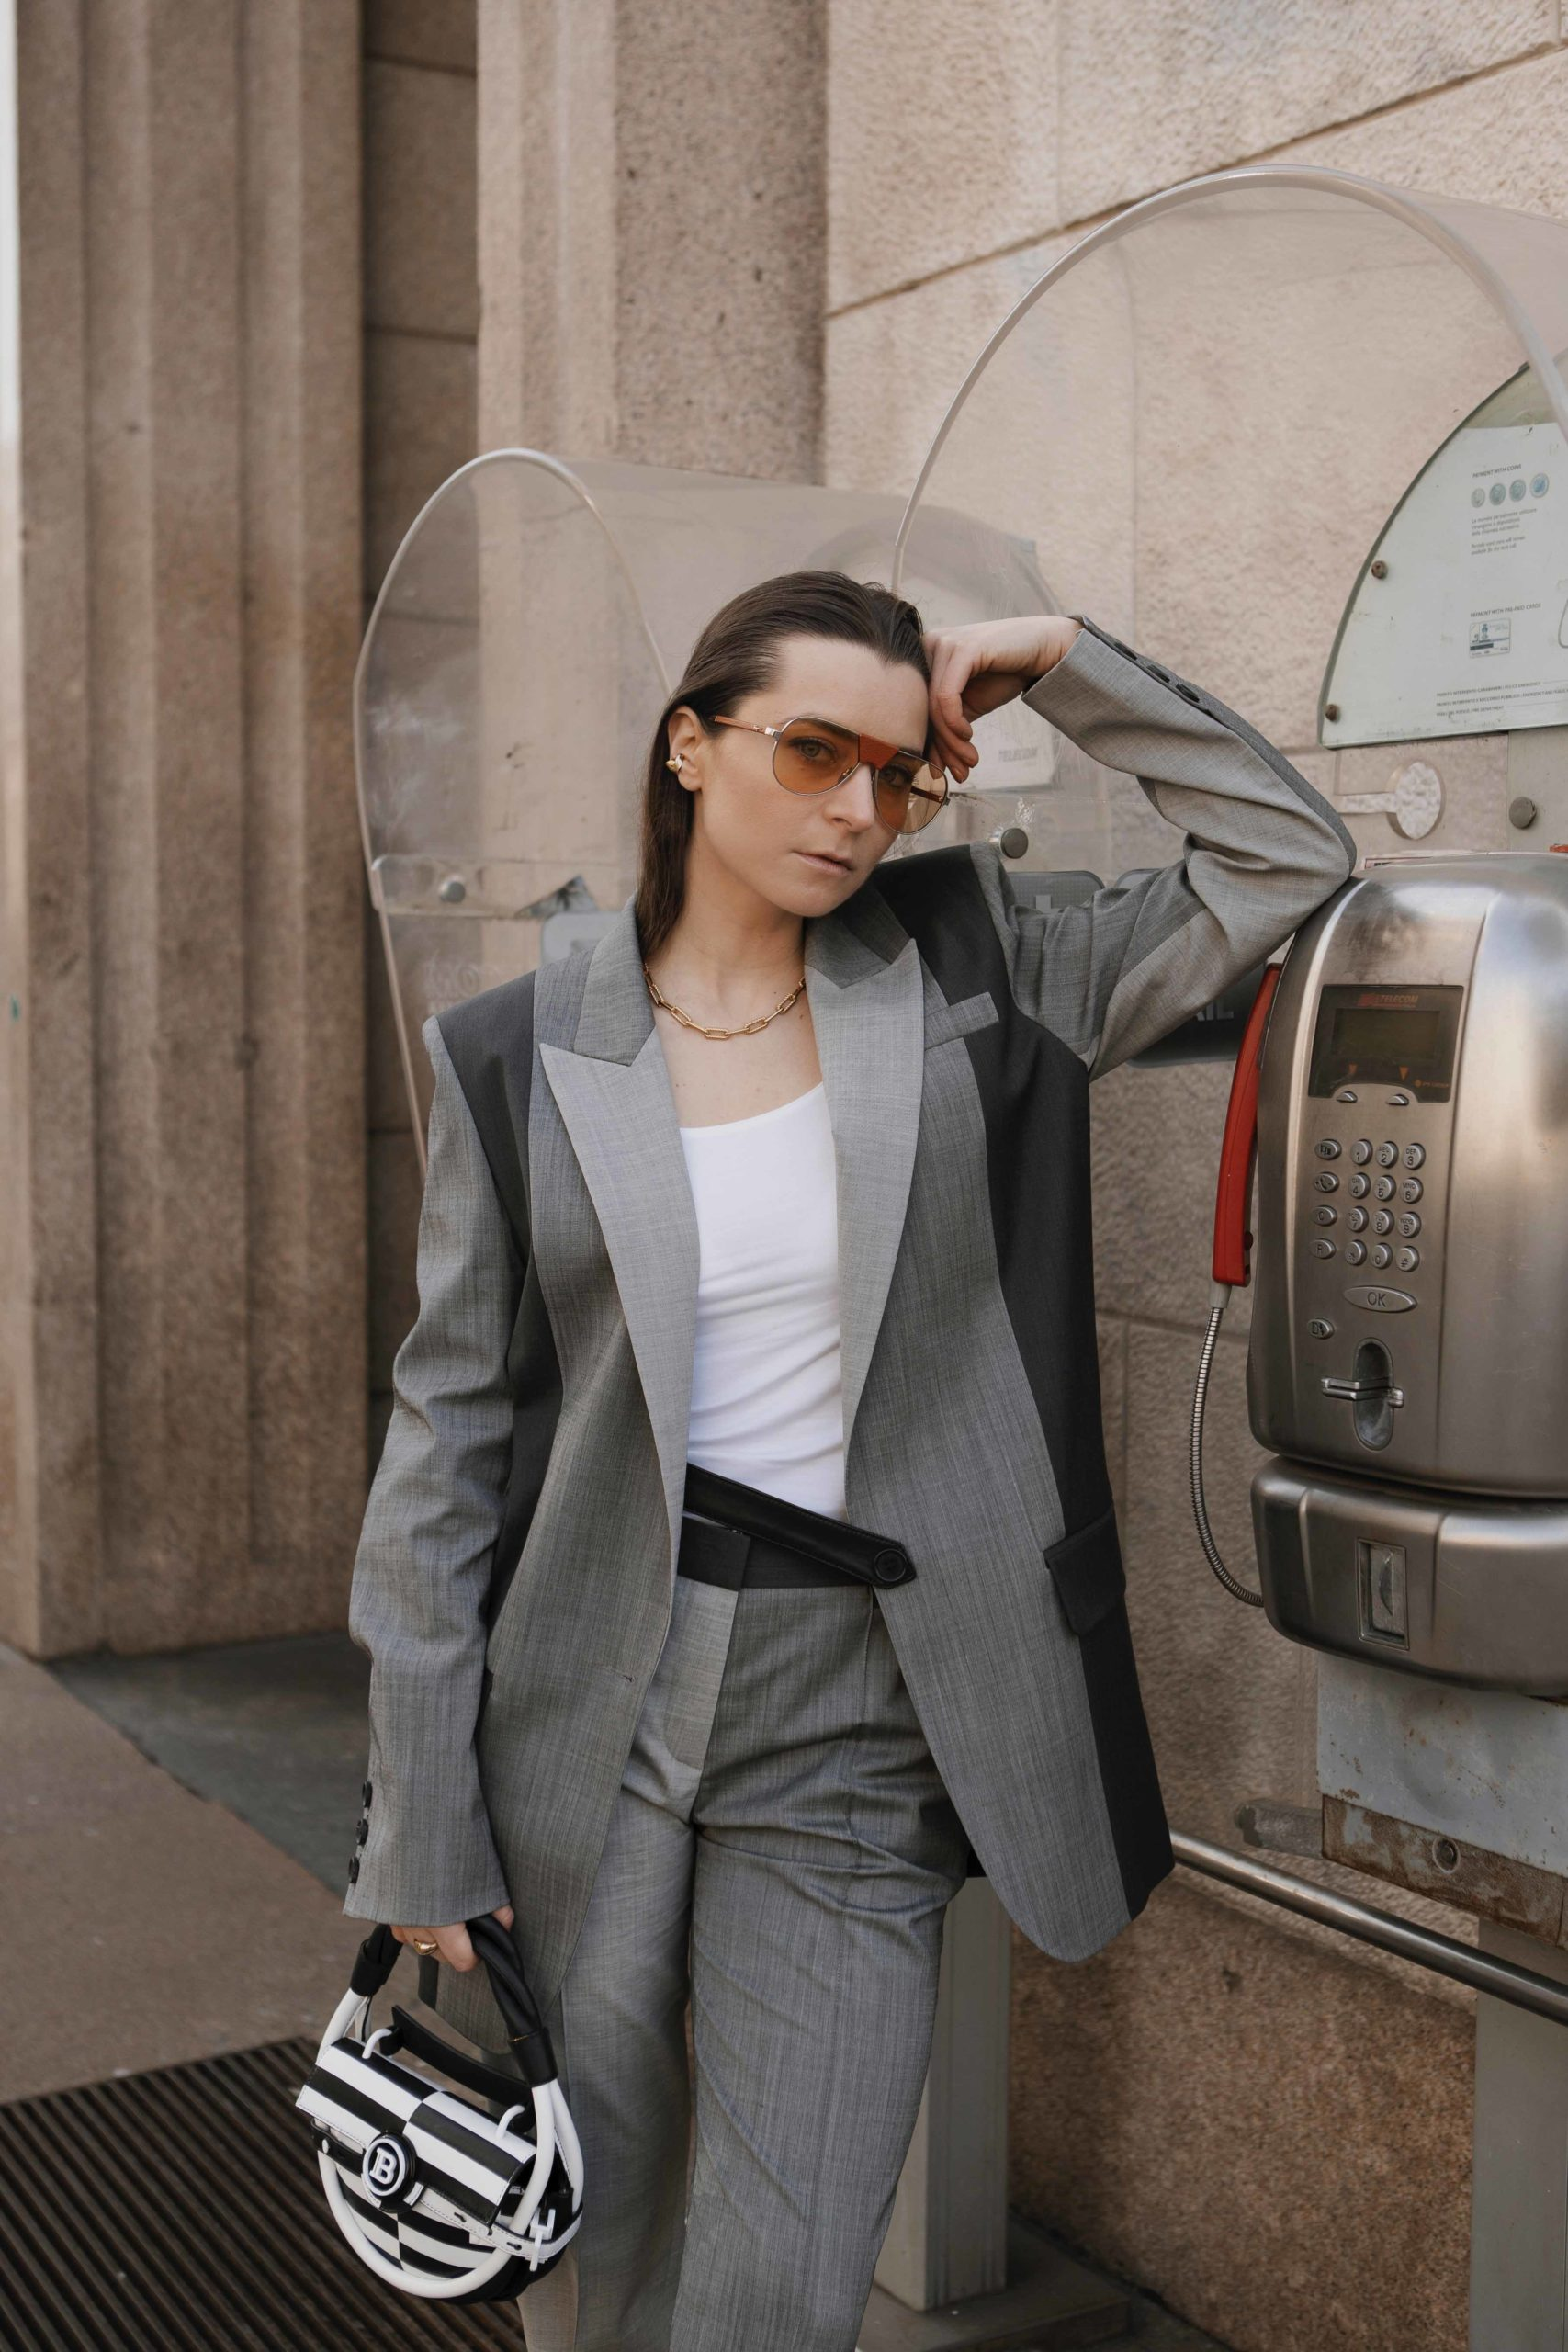 grey suit for women milan fashion week street style 2020 AW march 2020 julia comil balmain bag barbara bui bottega venetta sandals gucci socks